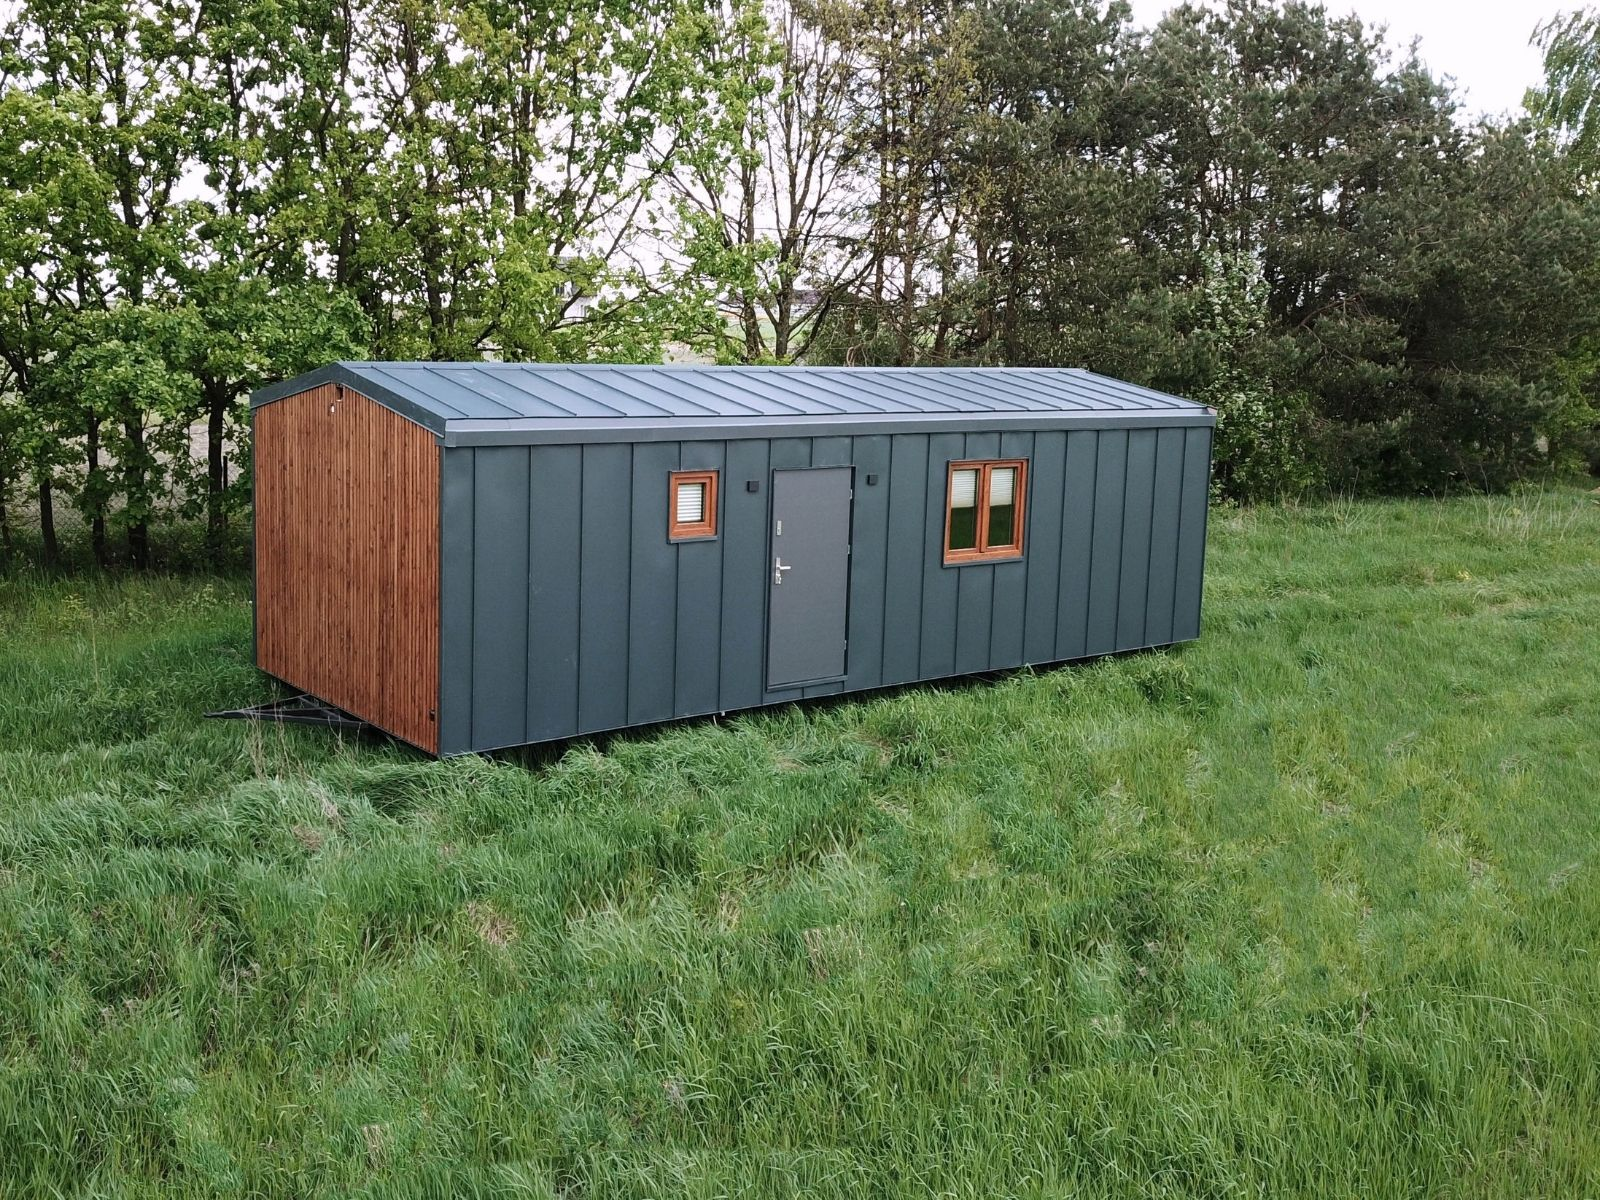 JPJ Mobile House - Producent domów mobilnych (26)